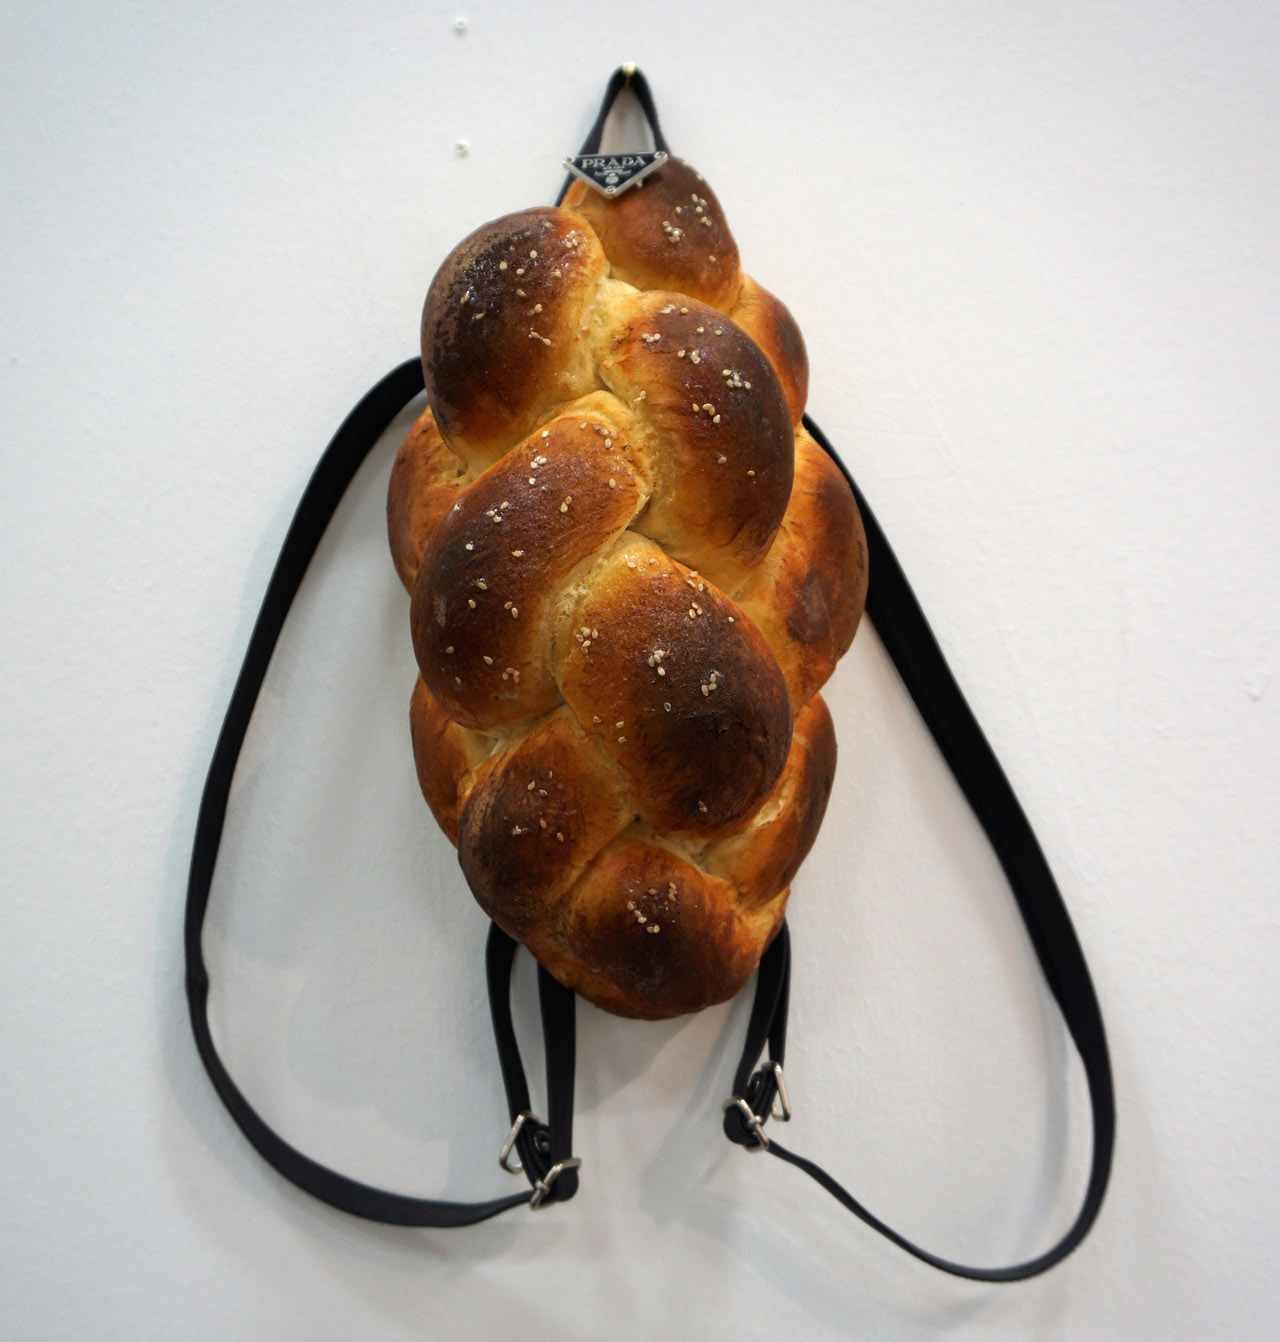 """Chloe Wise, """"Ain't No Challah Back (Pack) Girl"""" (2015), at the booth of Galerie Division"""